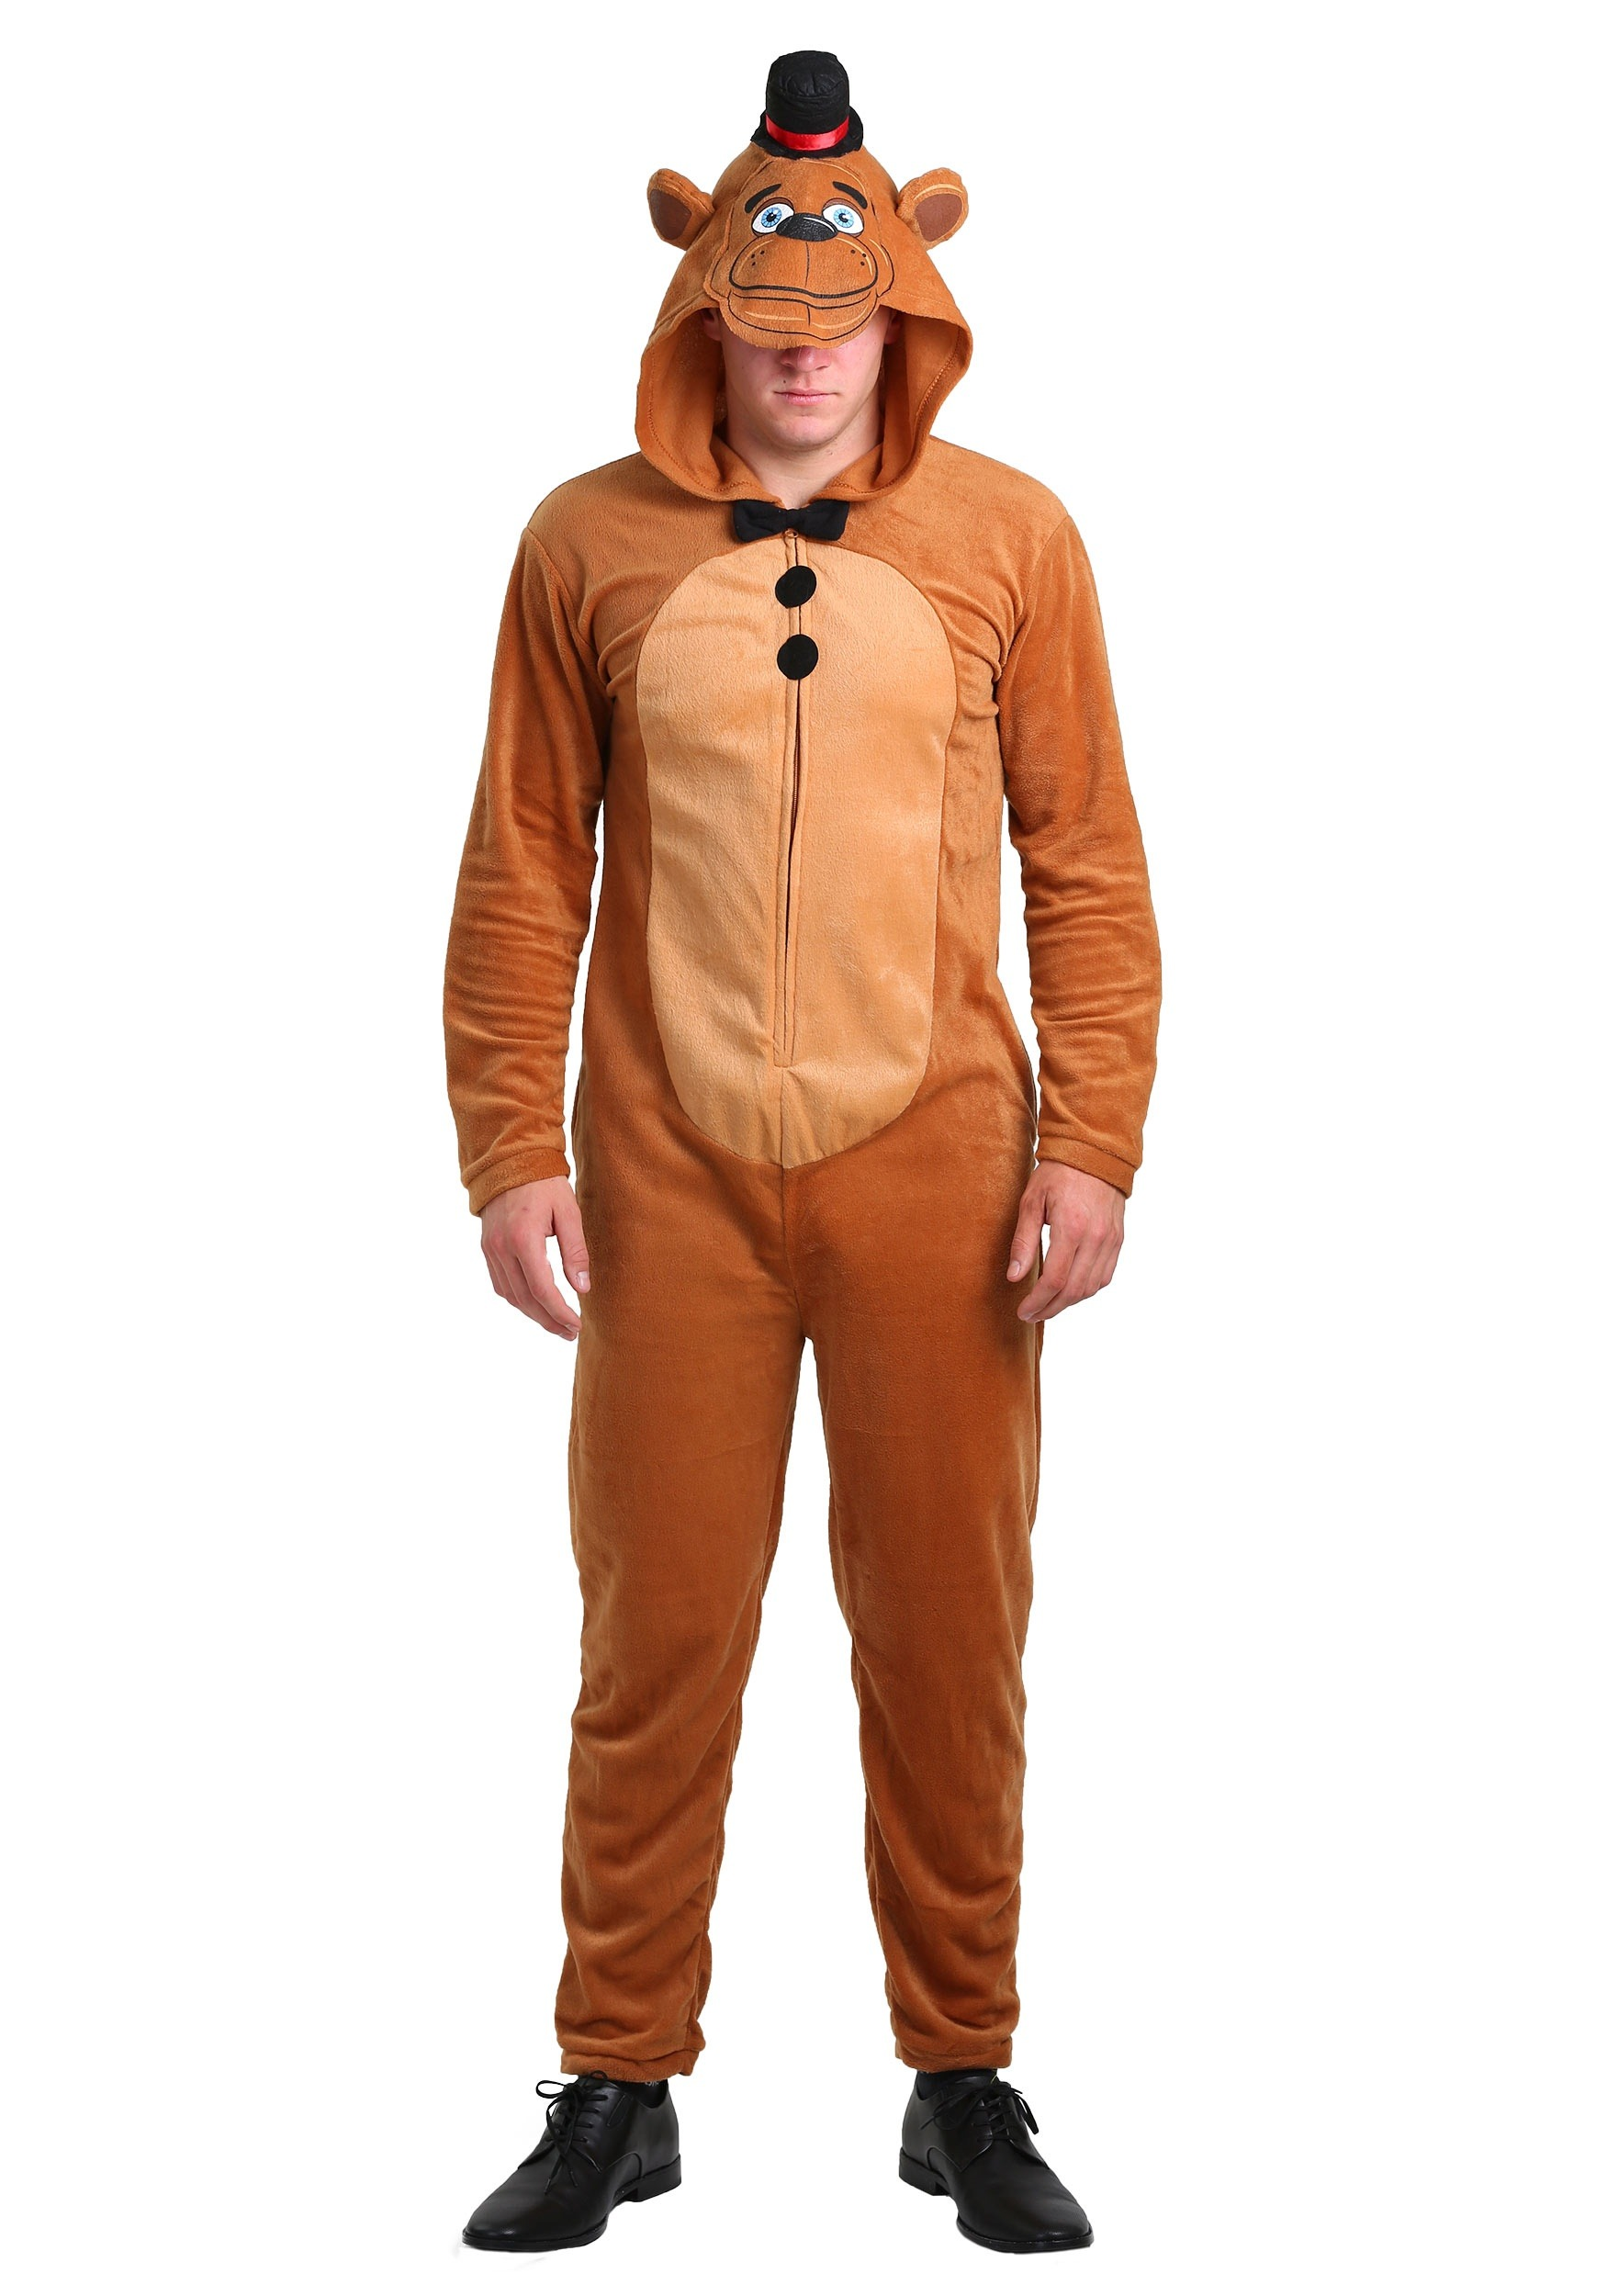 five nights at freddys mens union suit costume